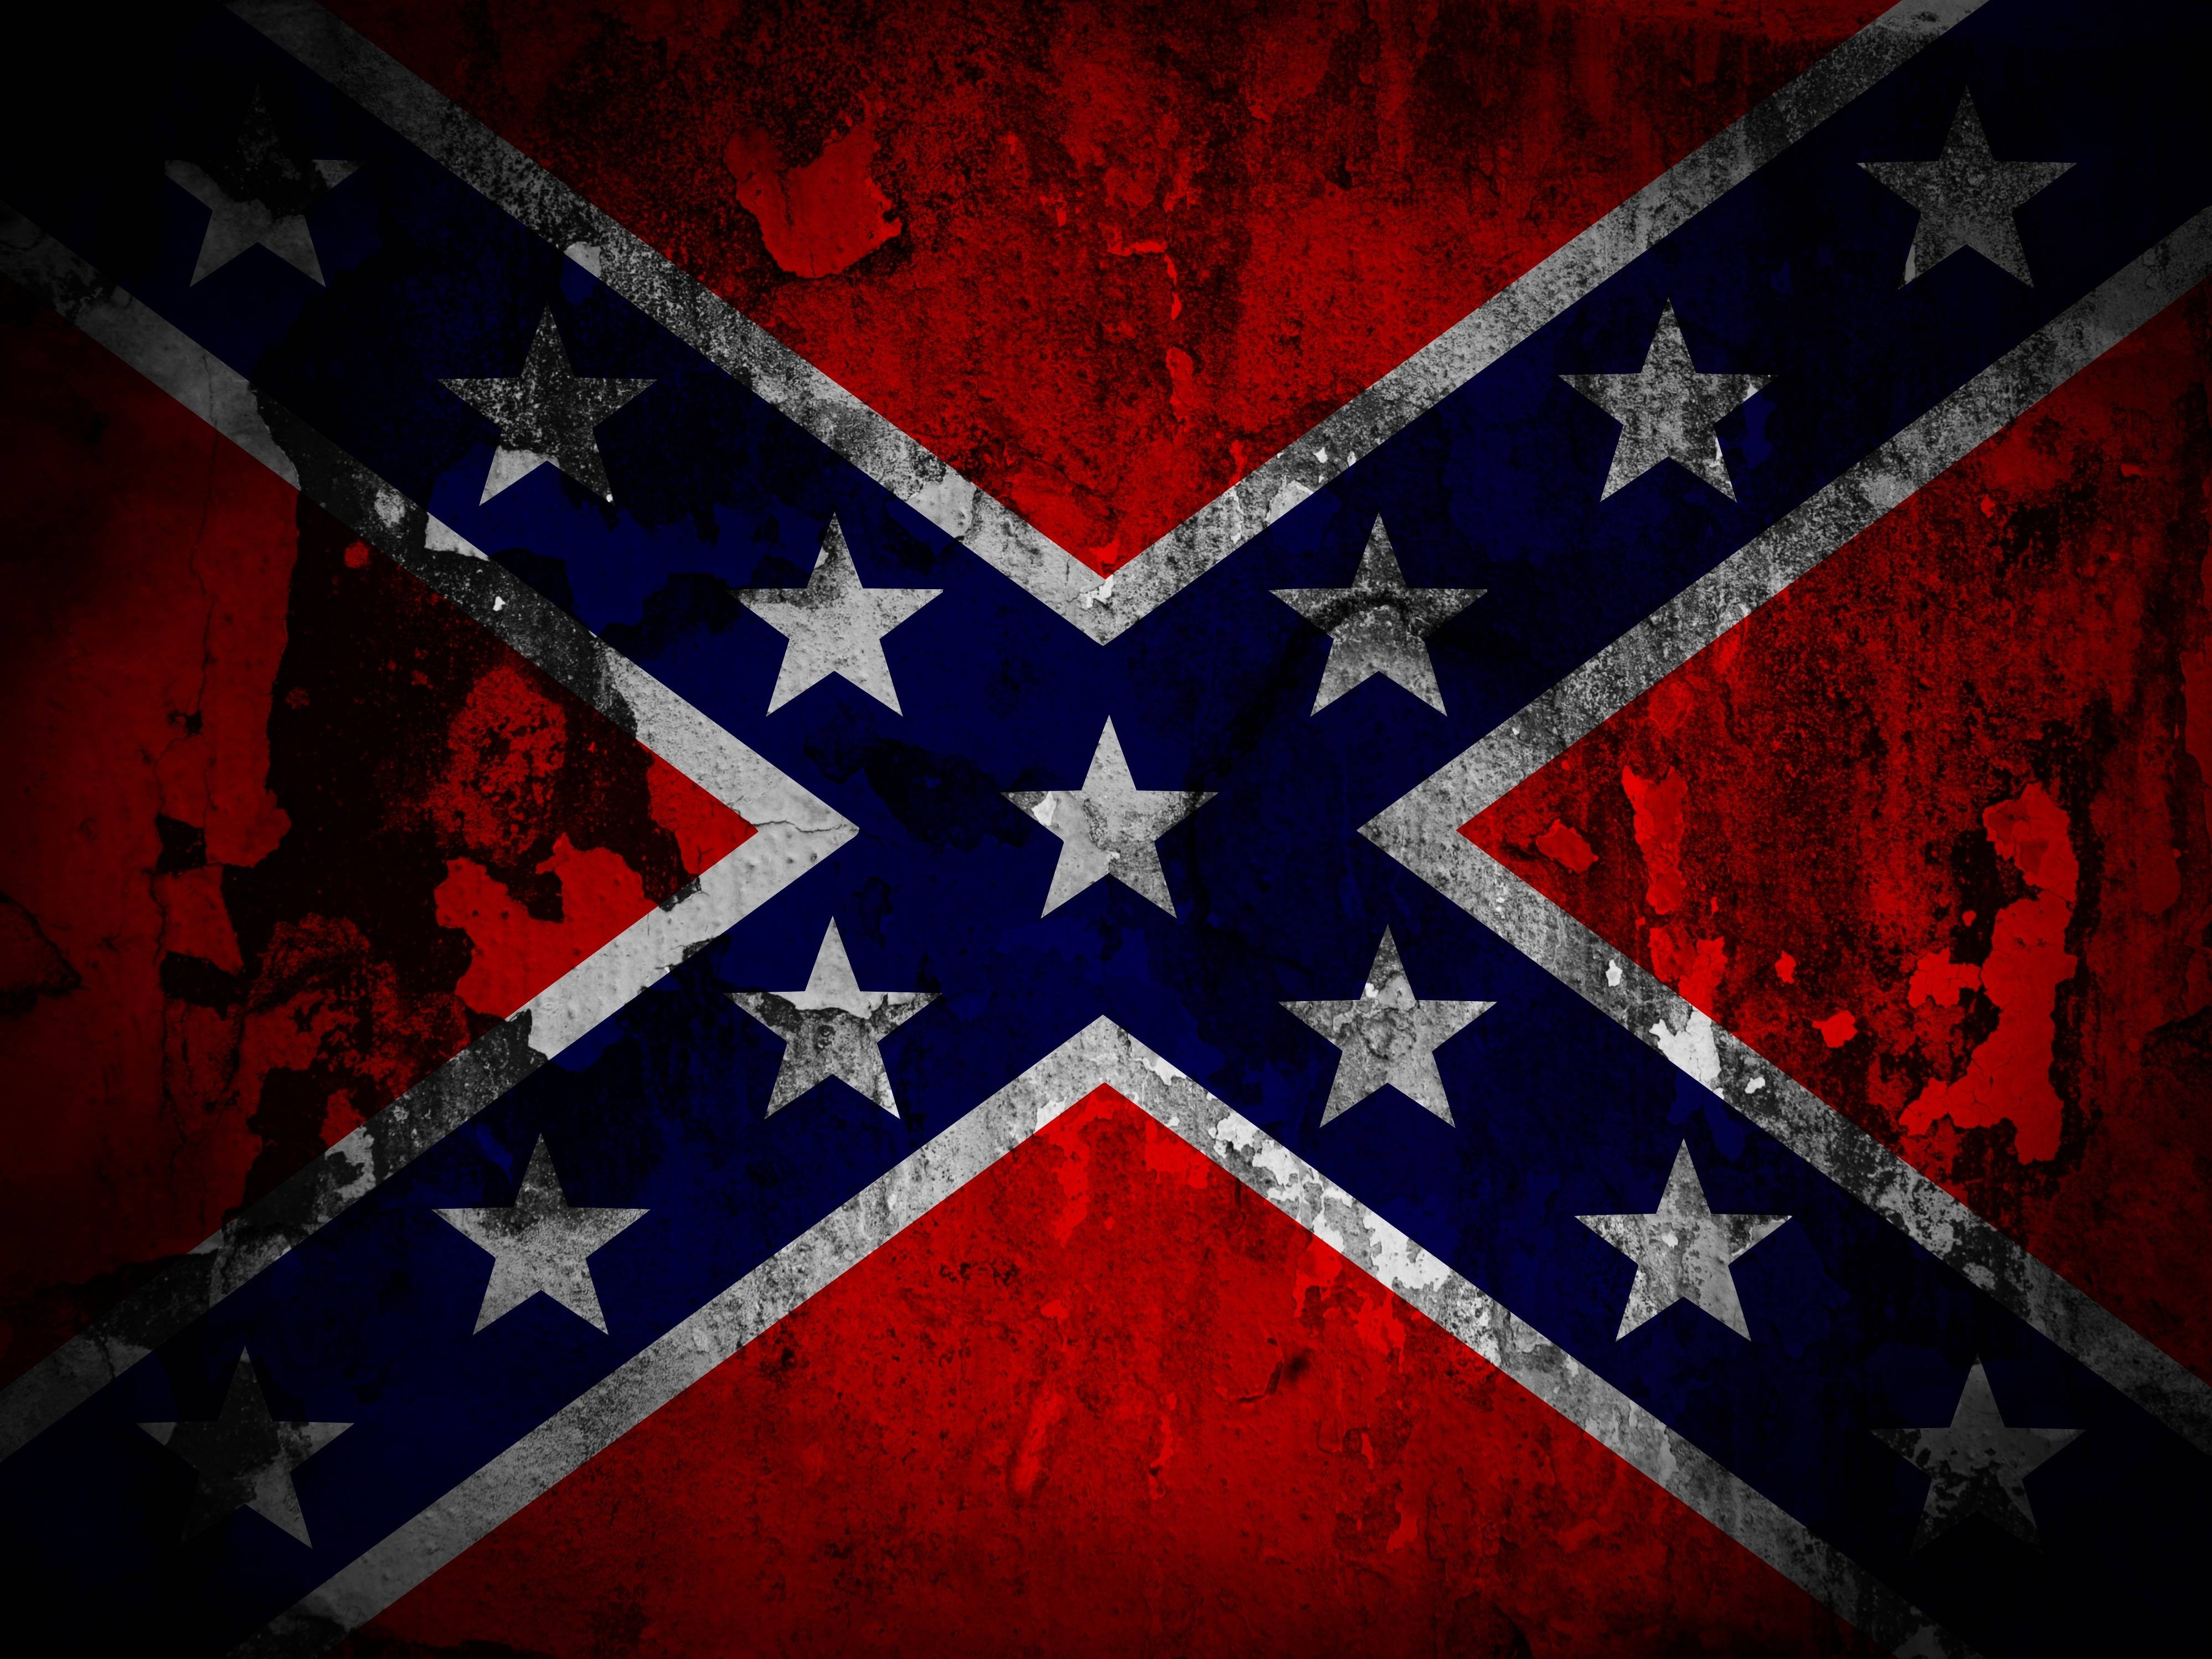 wallpaper.wiki-wallpapers-confederate-flag-hd-pic-wpb0012252